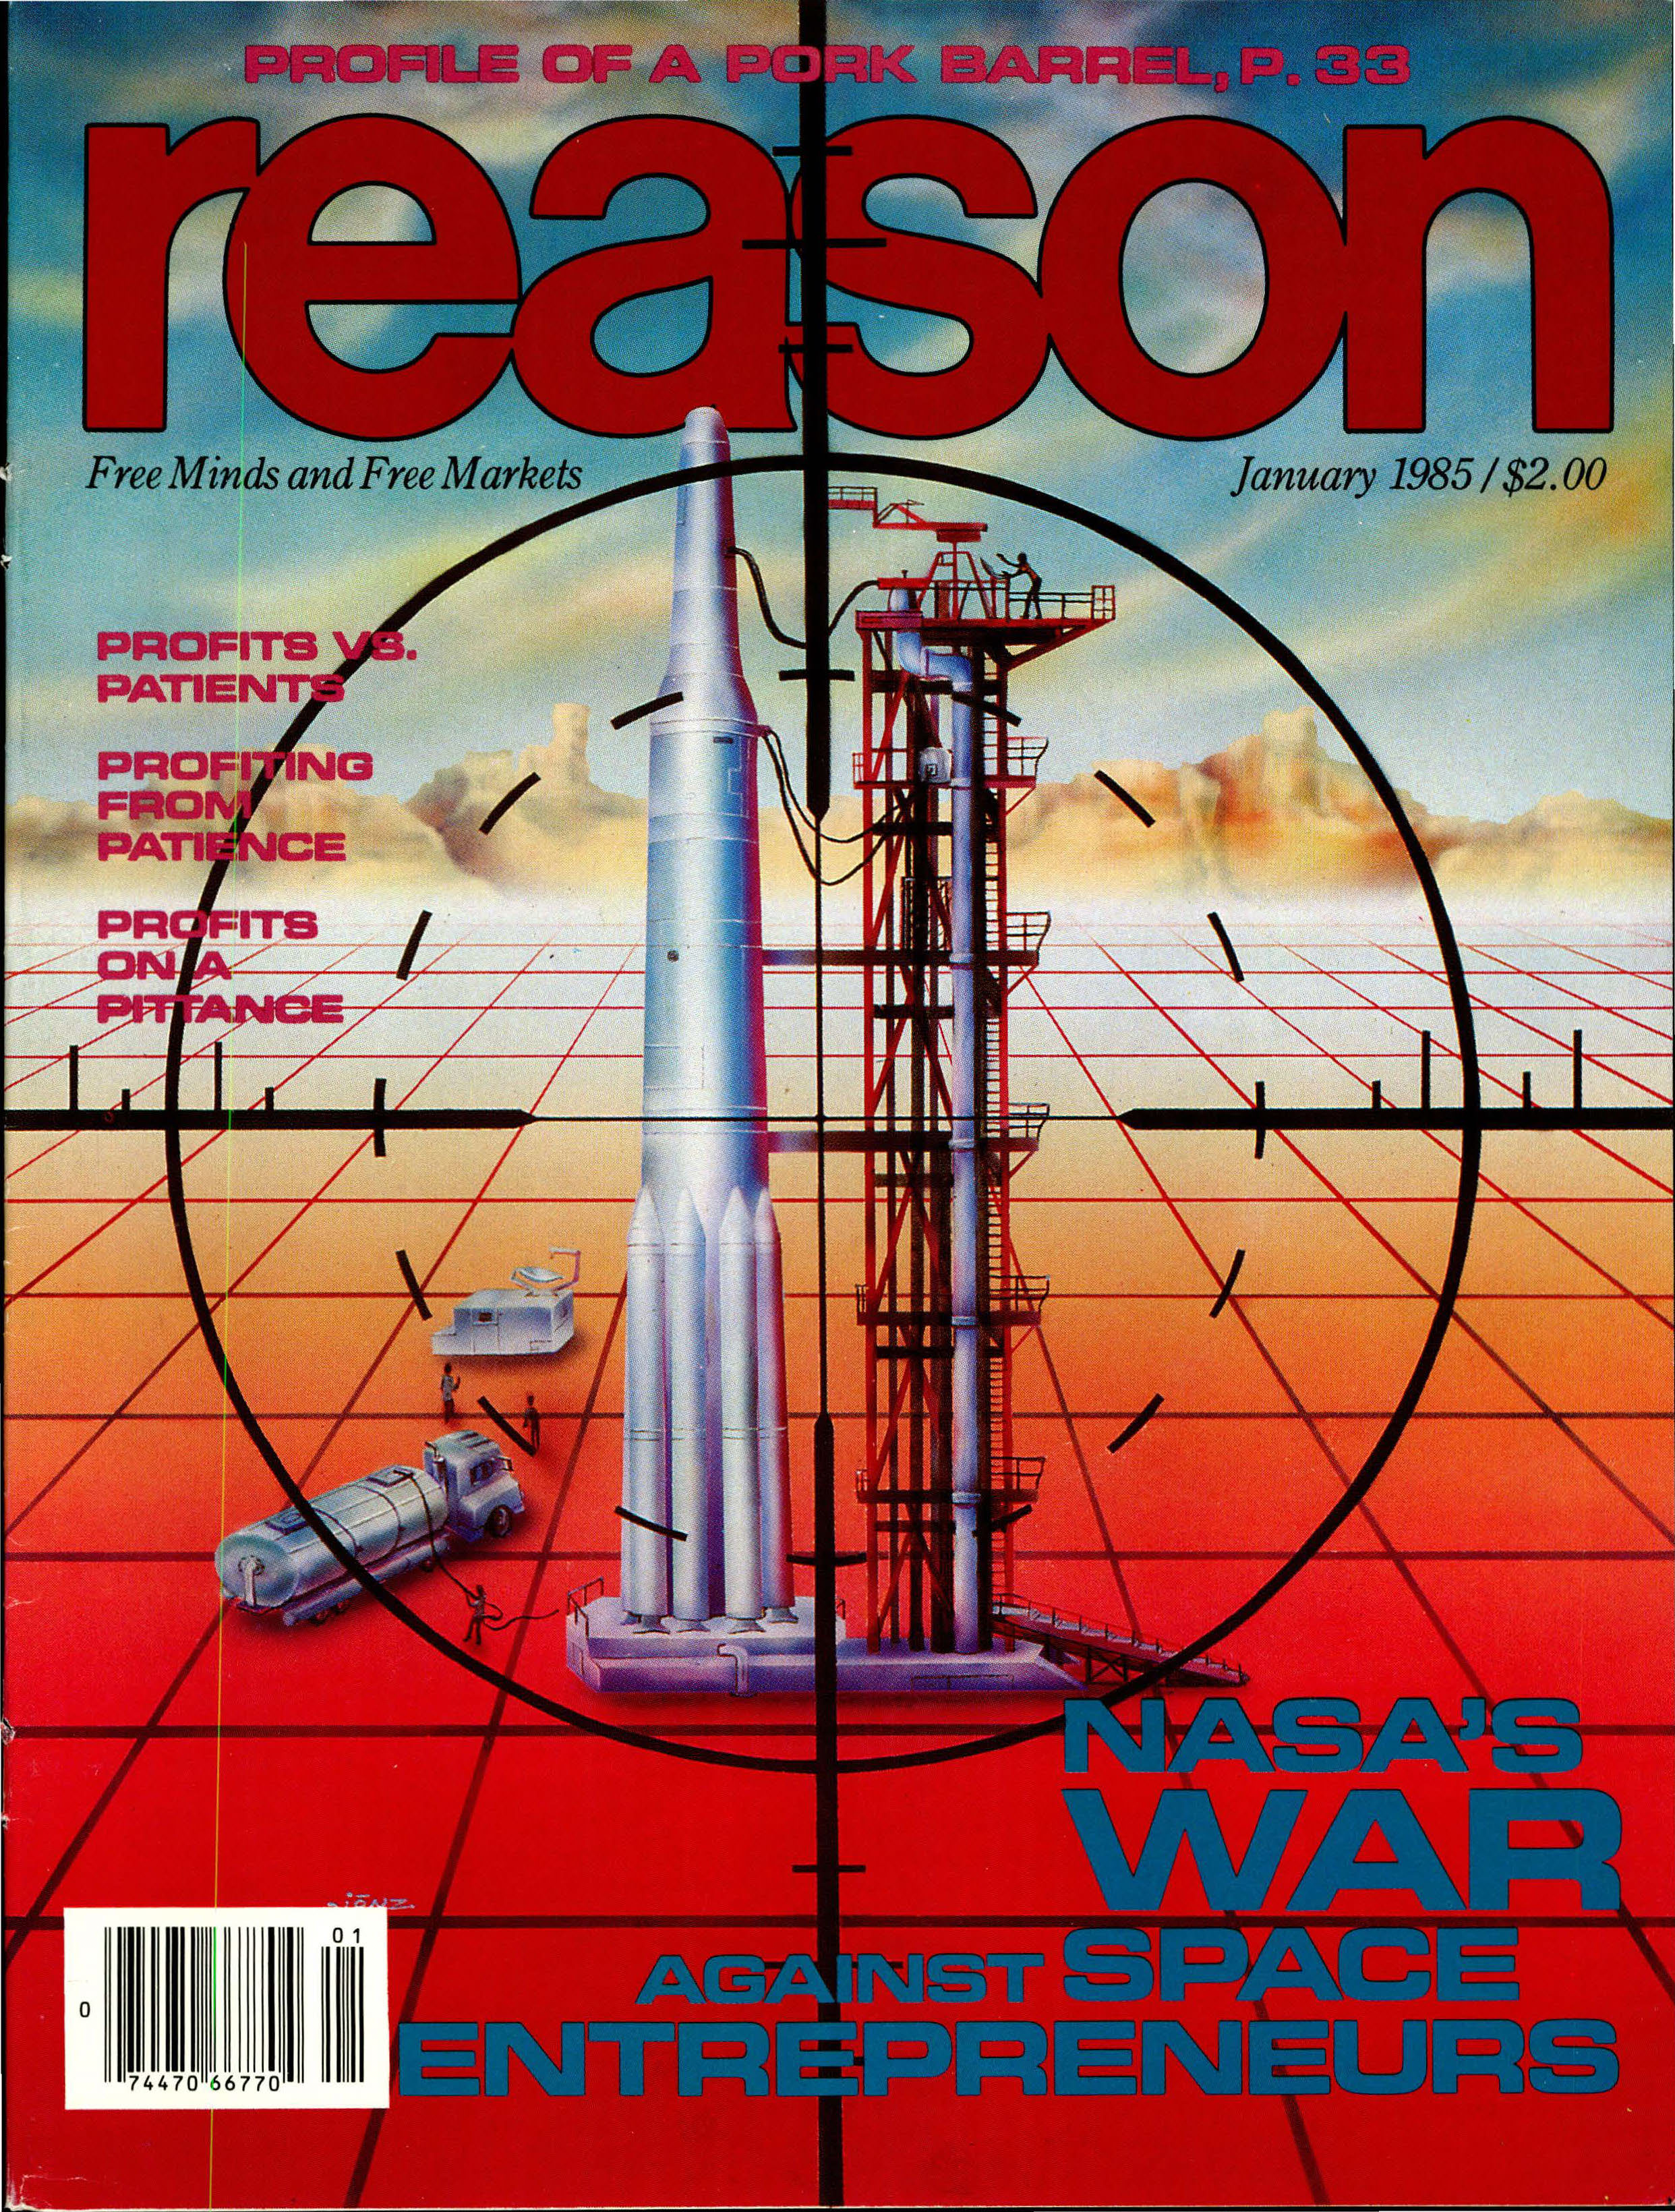 Reason Magazine, January 1985 cover image